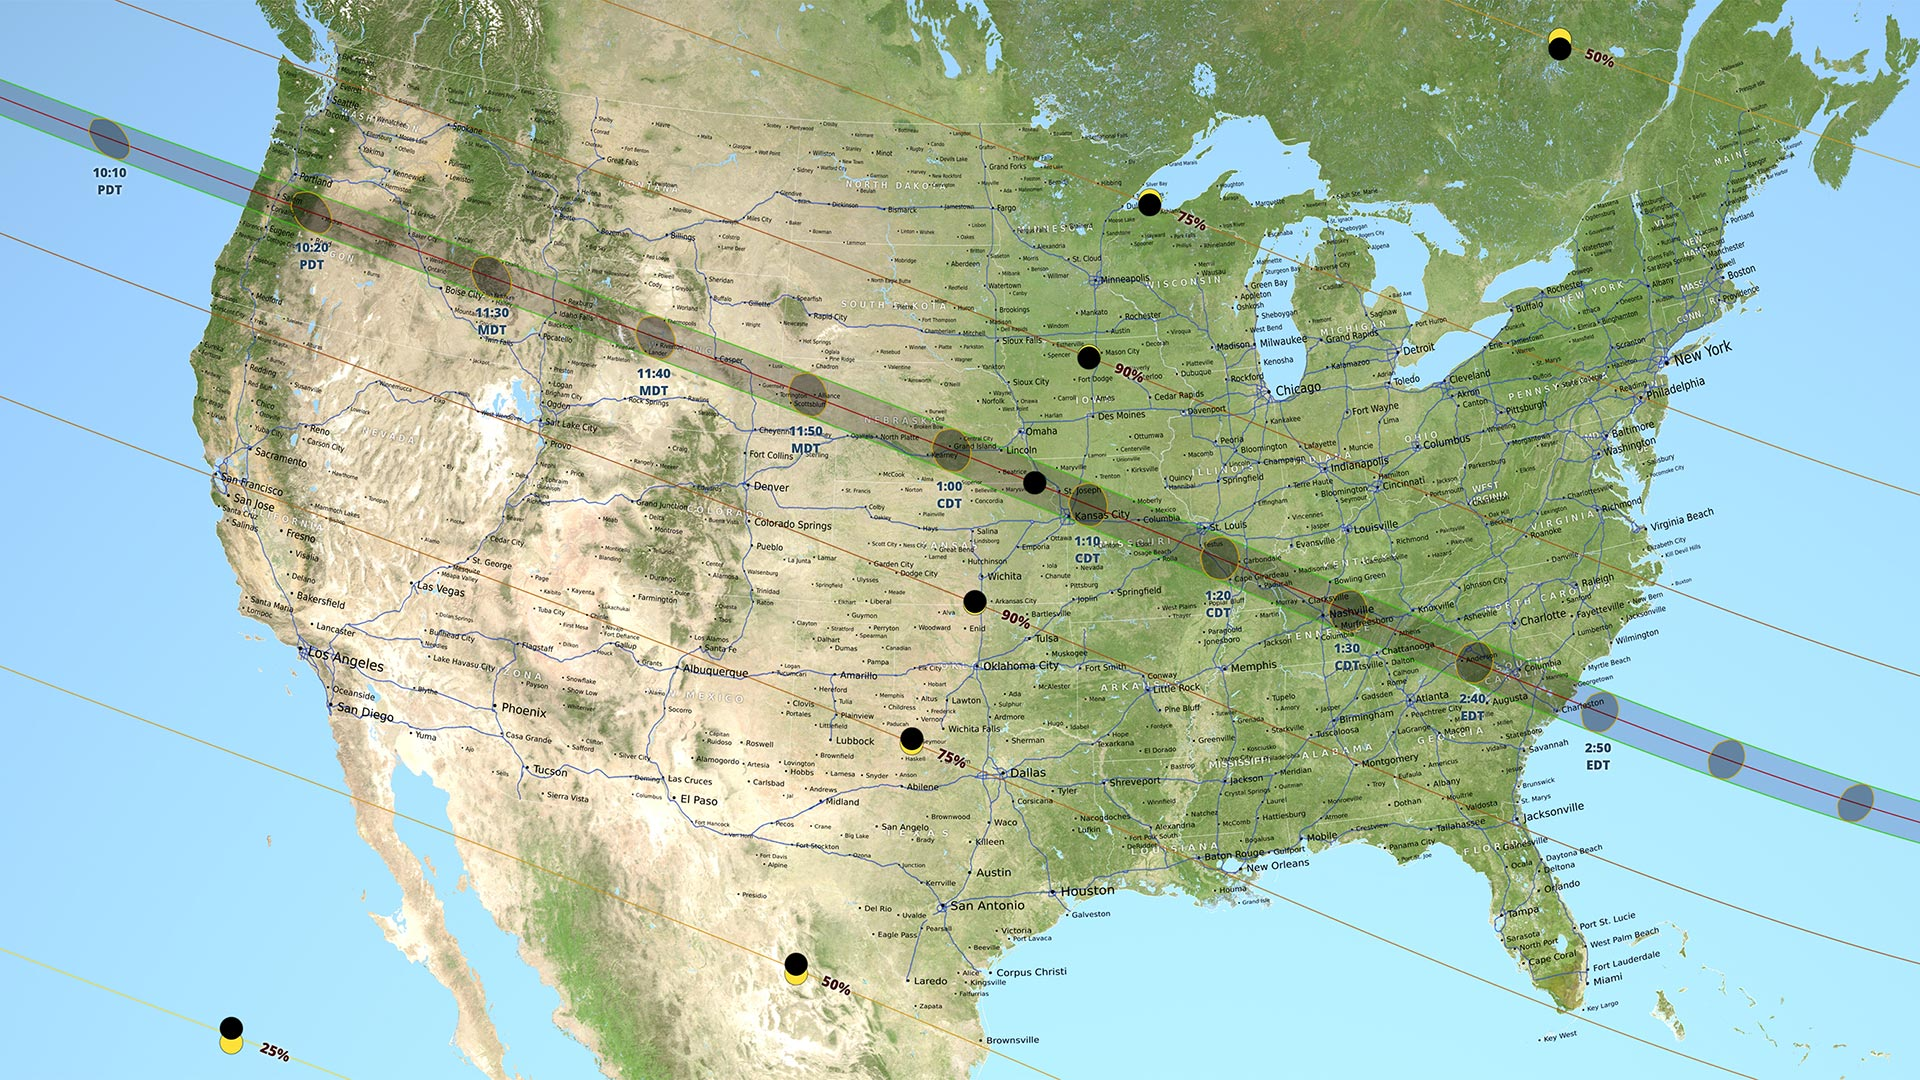 Eclipse 2017 path of totality